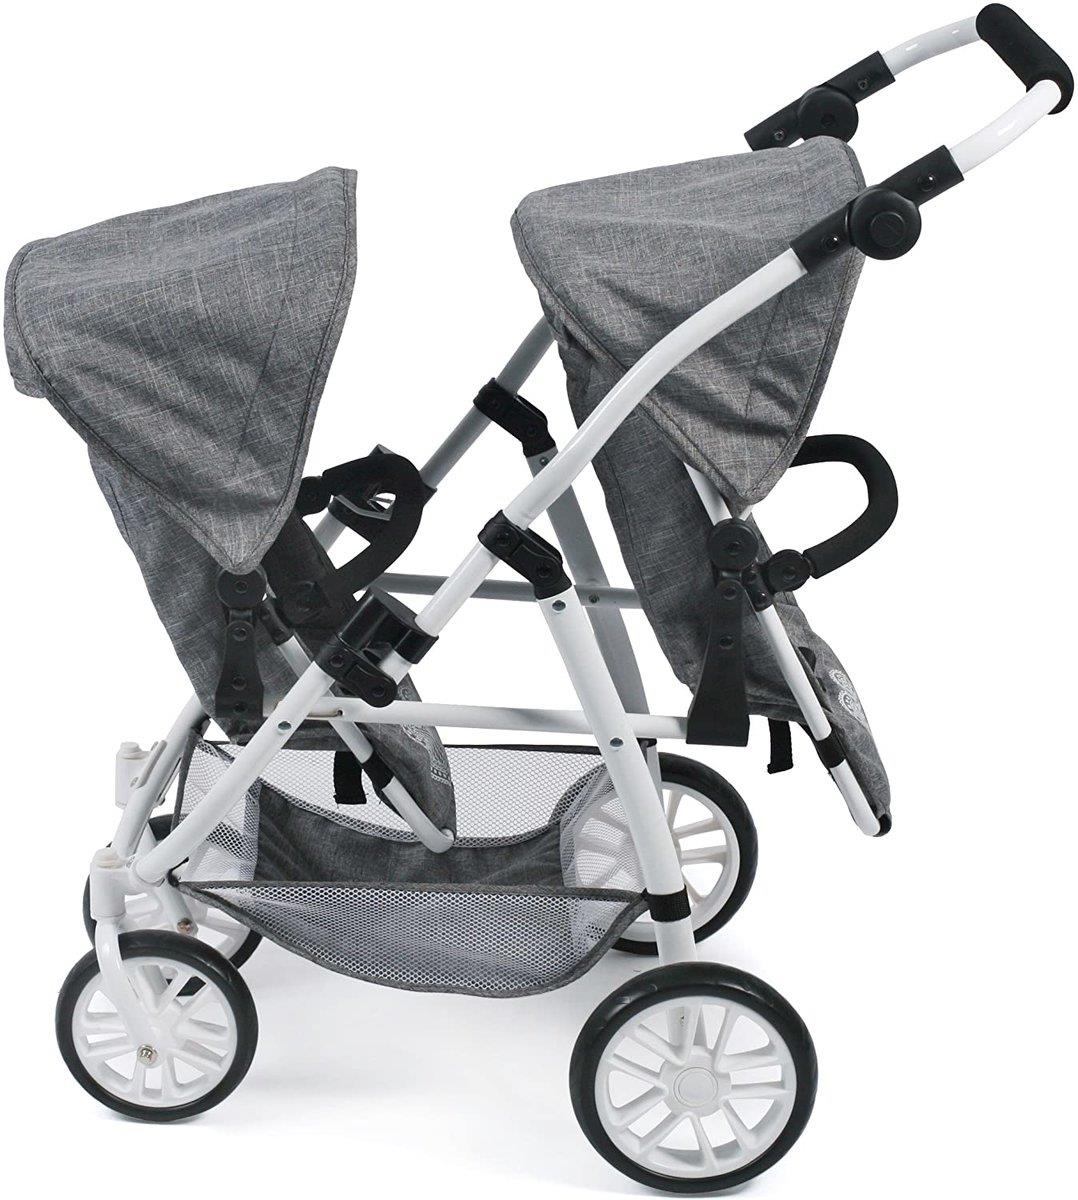 Bayer Chic Tandembuggy VARIO, Jeans Grey